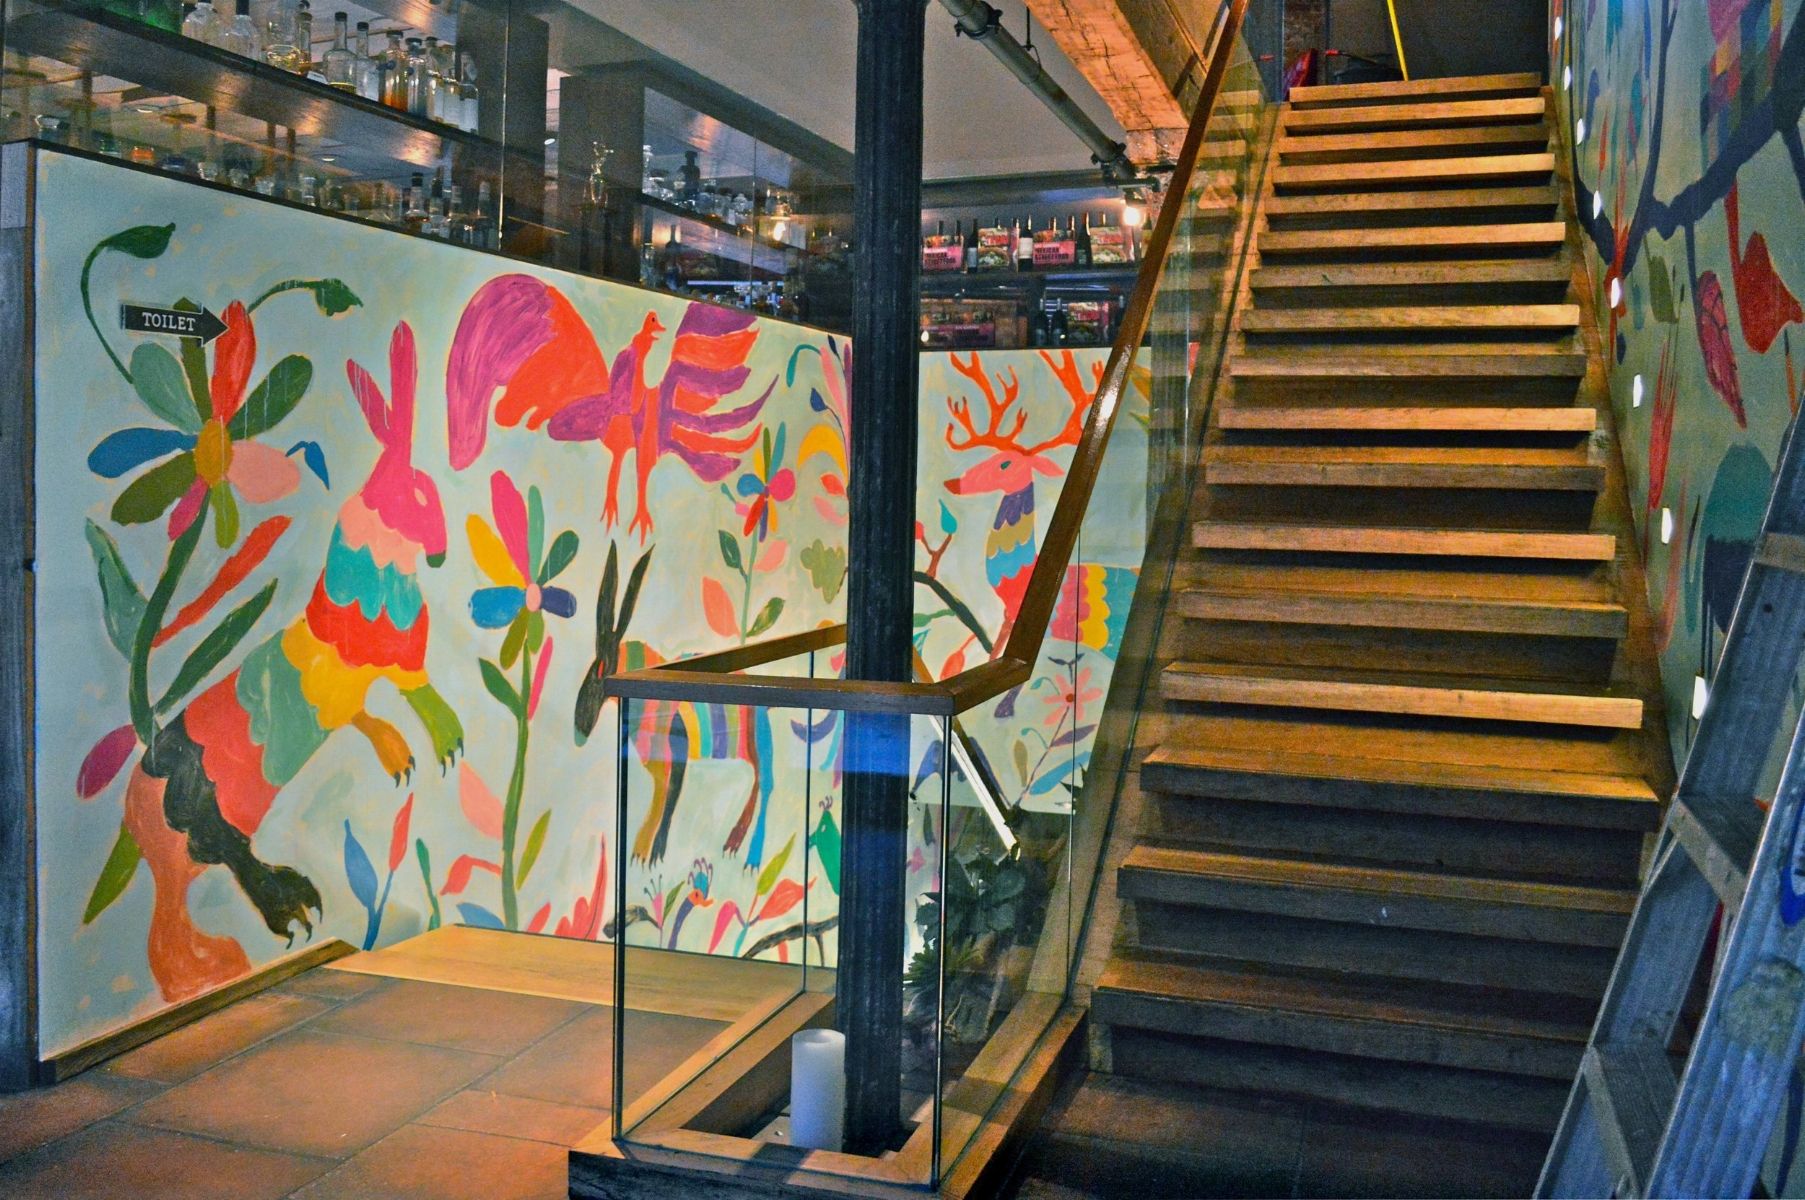 Dos Caminos, Meat Packing District, NYCDos Caminos, Meatpacking District, NYC